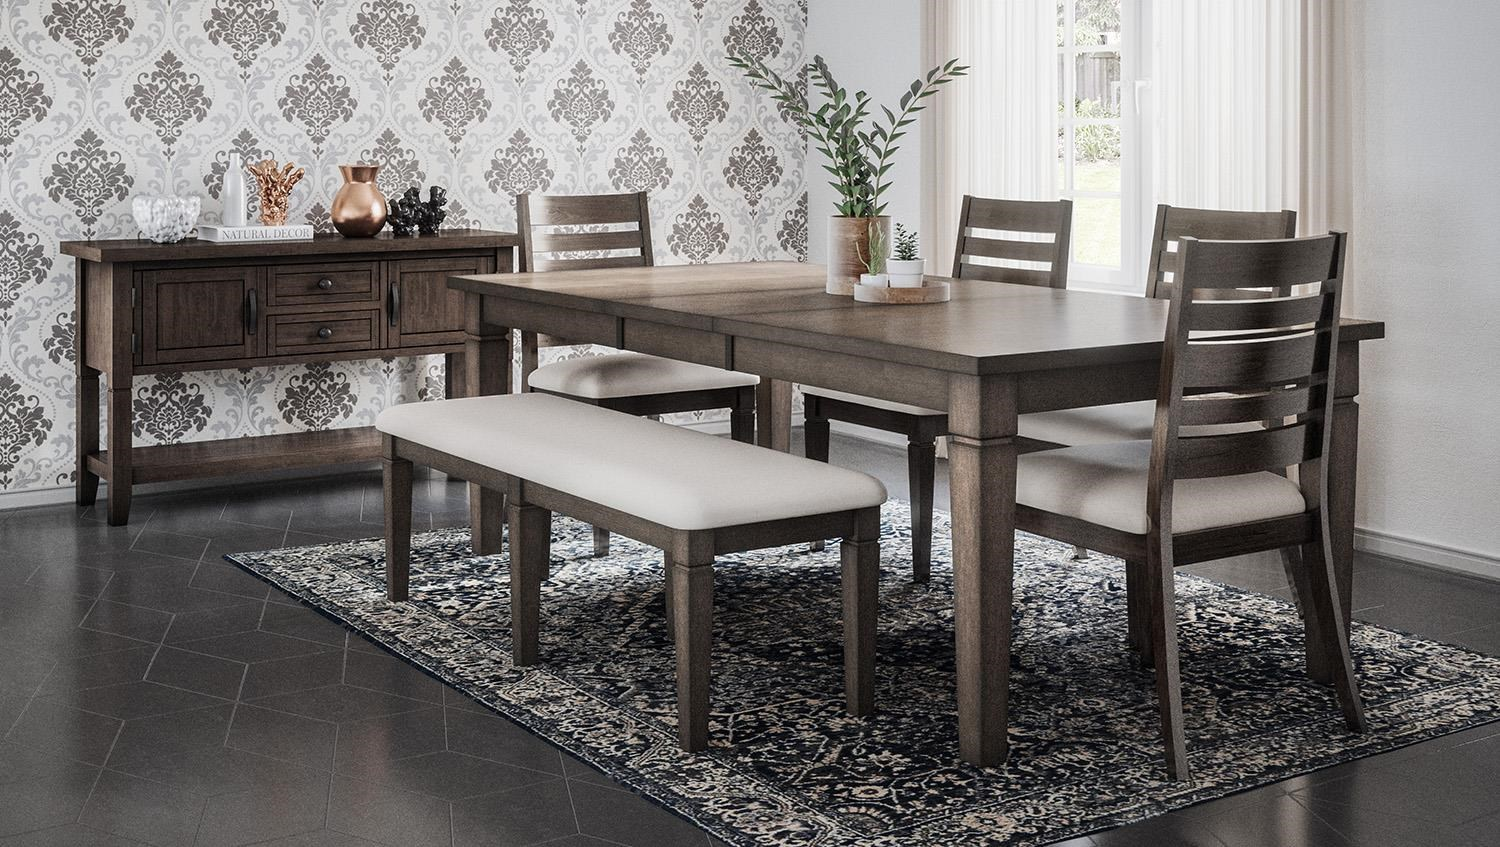 Lincoln Square 7-Piece Table and Chair Set by Jofran at Stoney Creek Furniture